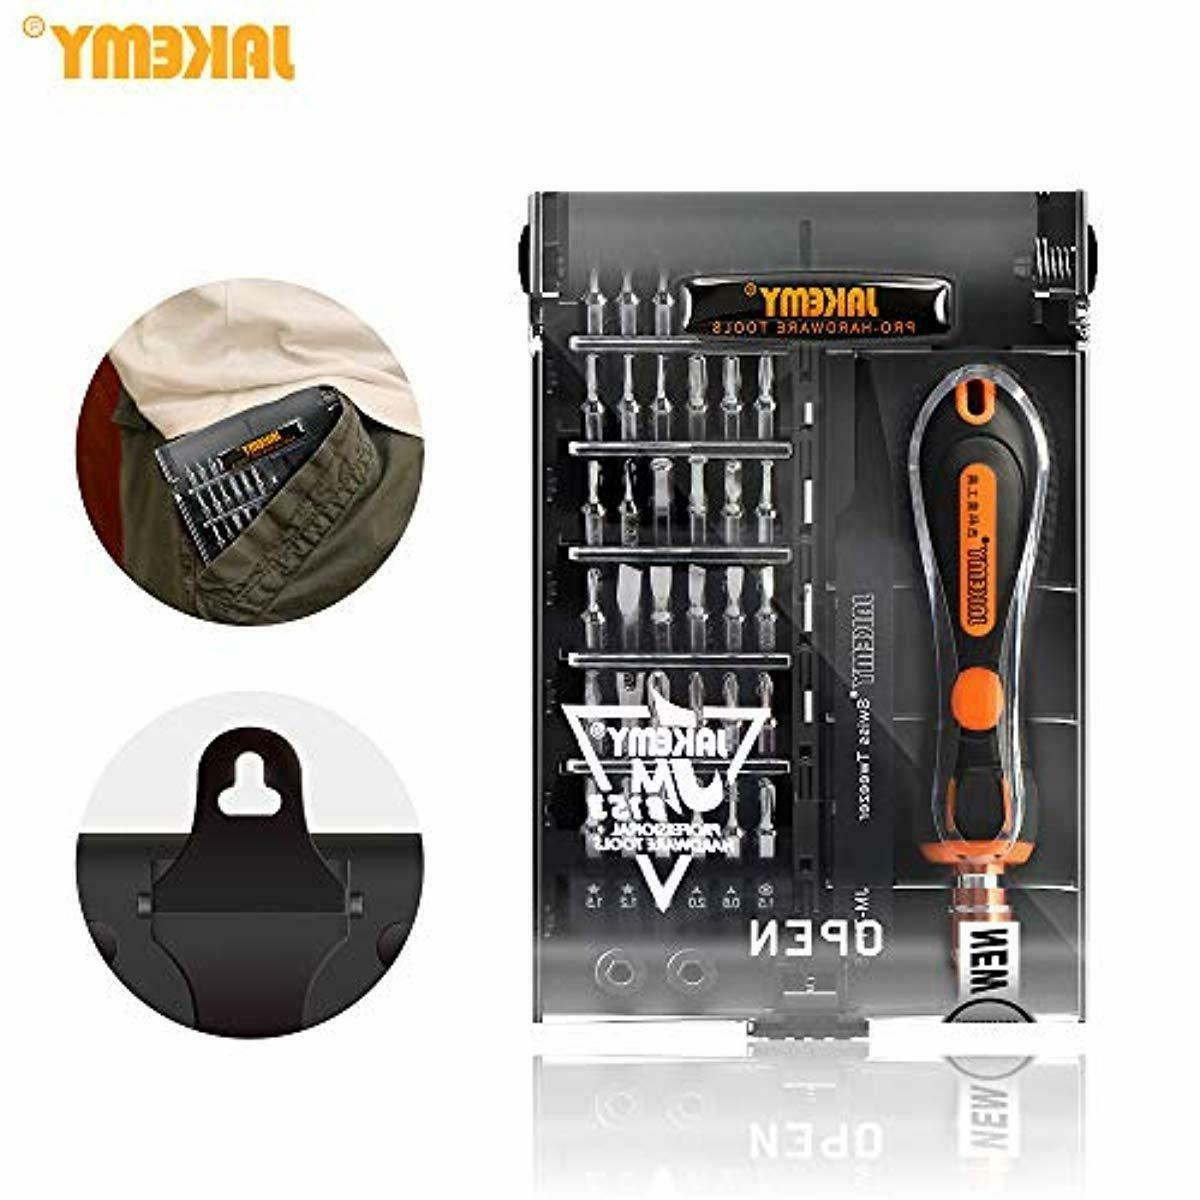 43 in1 Precision Kit or Cell Phone